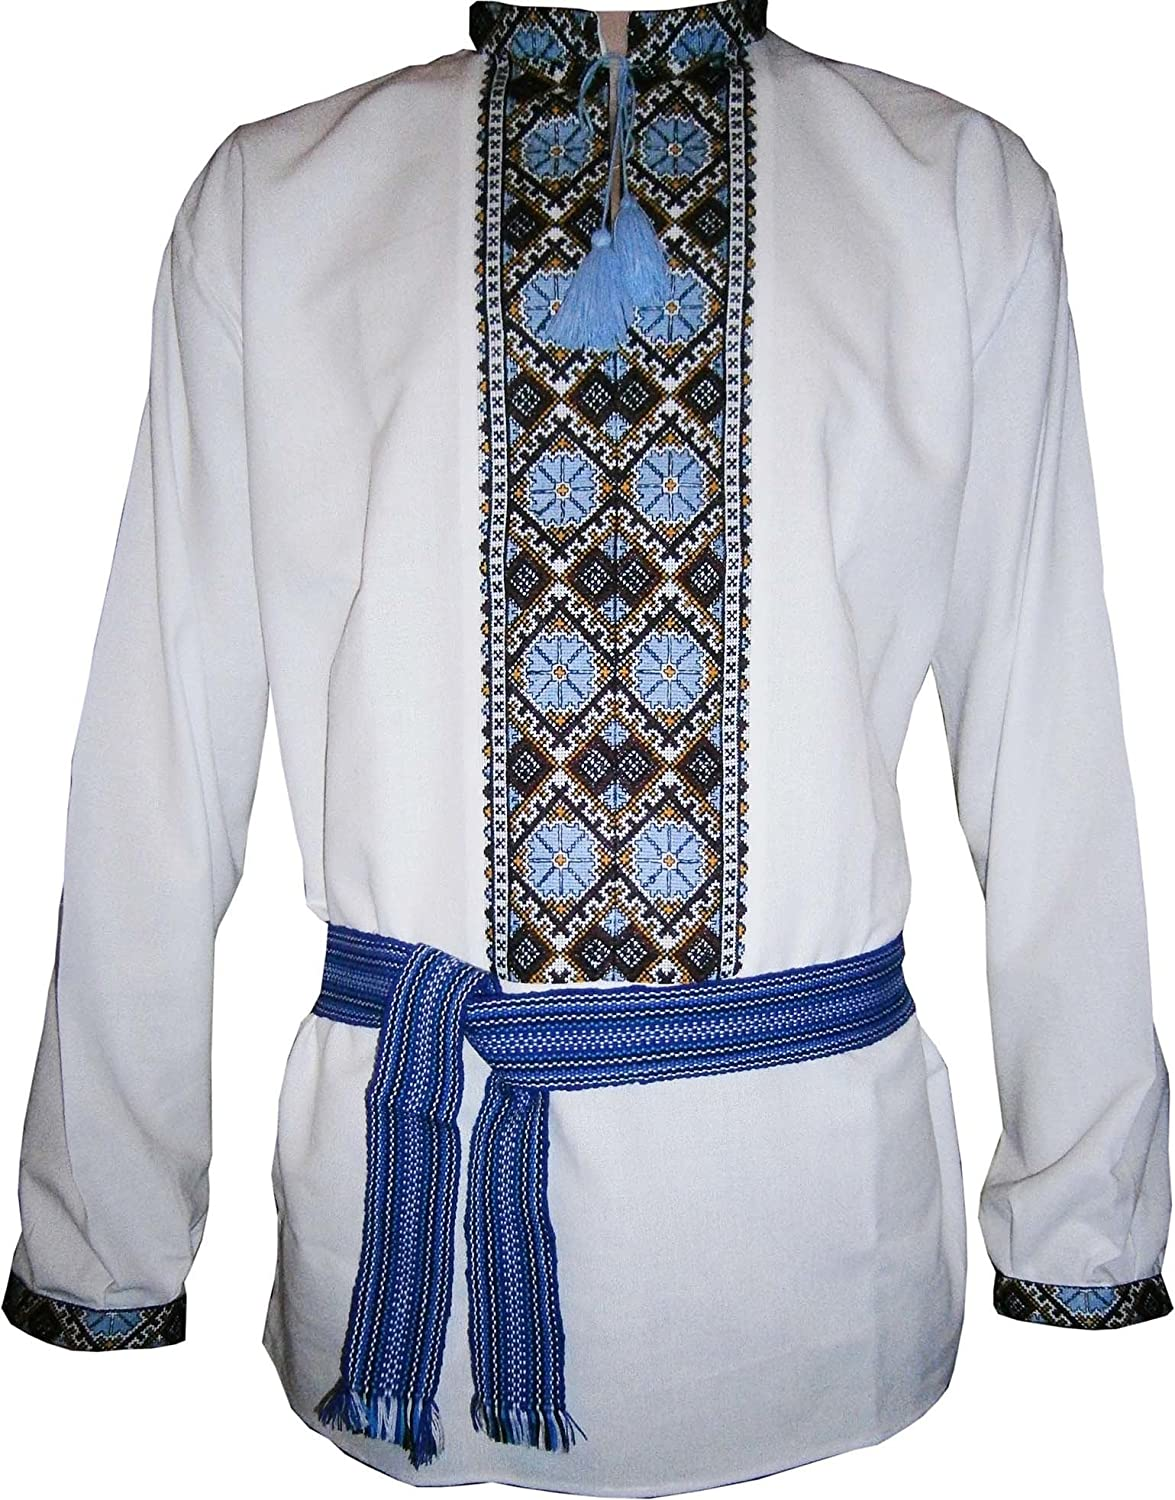 White and blue embroidered shirt Ukrainian vyshyvanka in diffucult technique handmade embroidery ethno shirt vintage sorochka